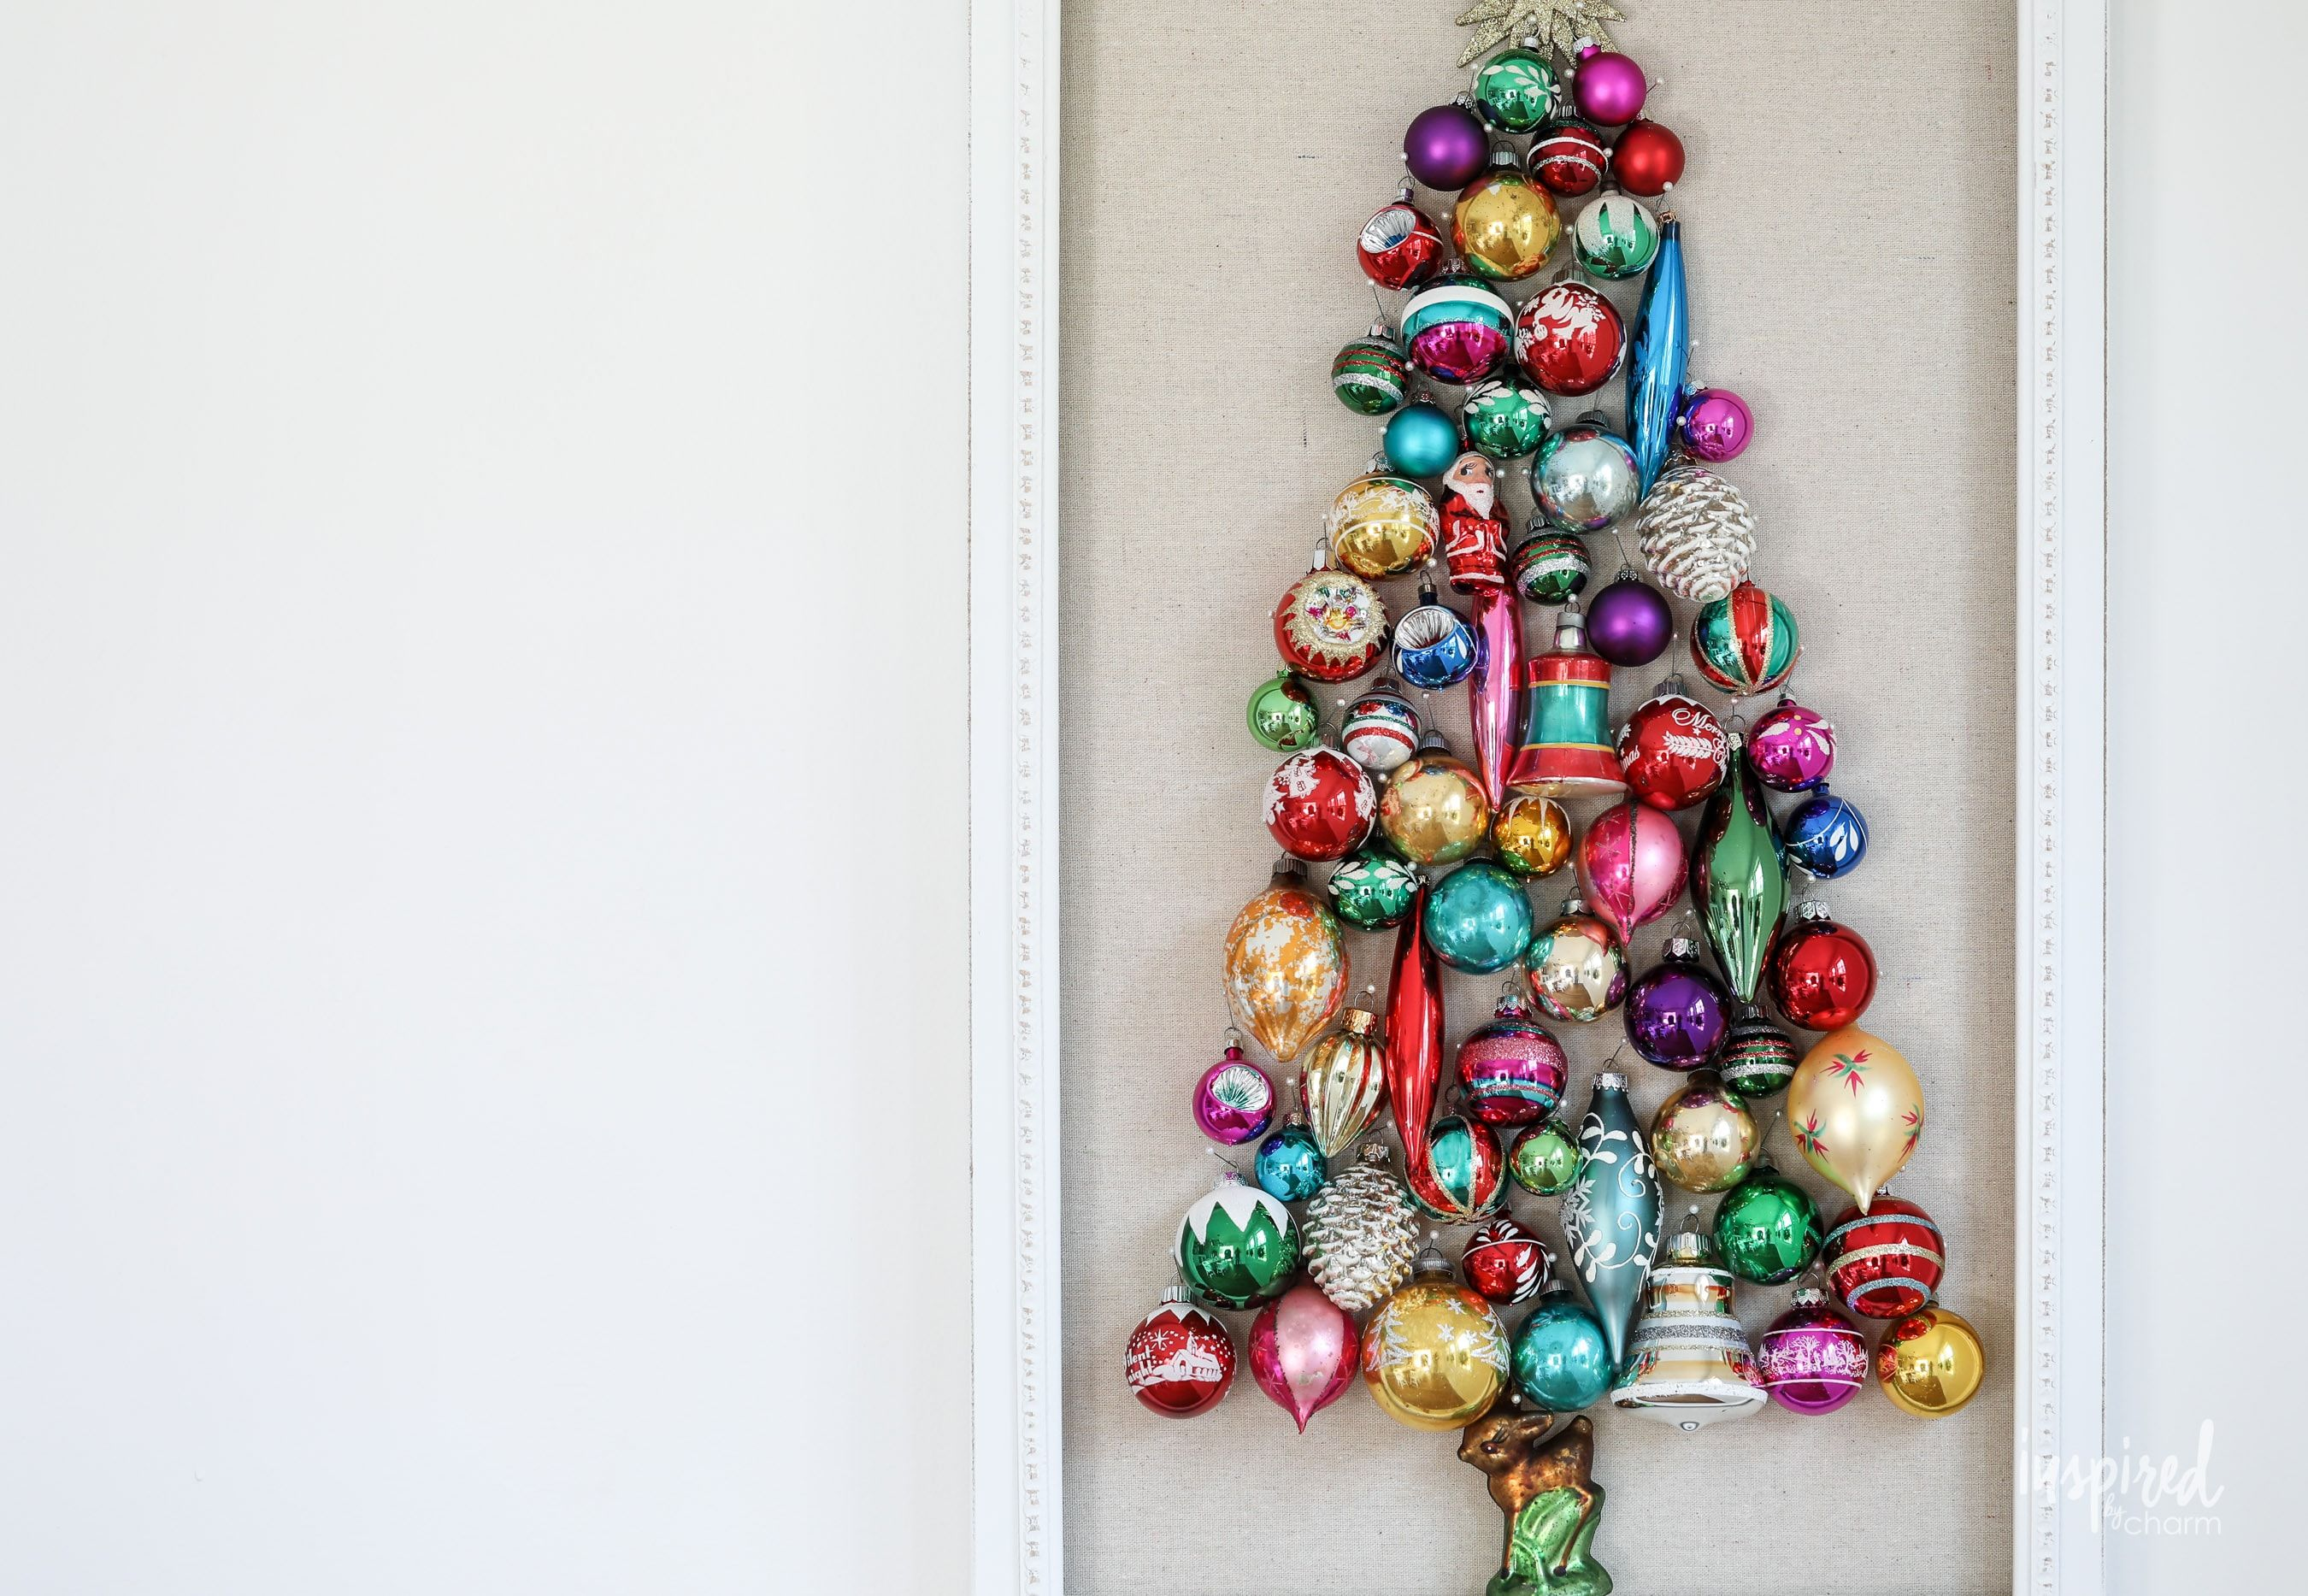 Learn How To Make This Diy Vintage Ornament Wall Decor Tree Christmas Holiday Vintage Ornament Tree Walldec Tree Wall Decor Diy Vintage Vintage Ornaments